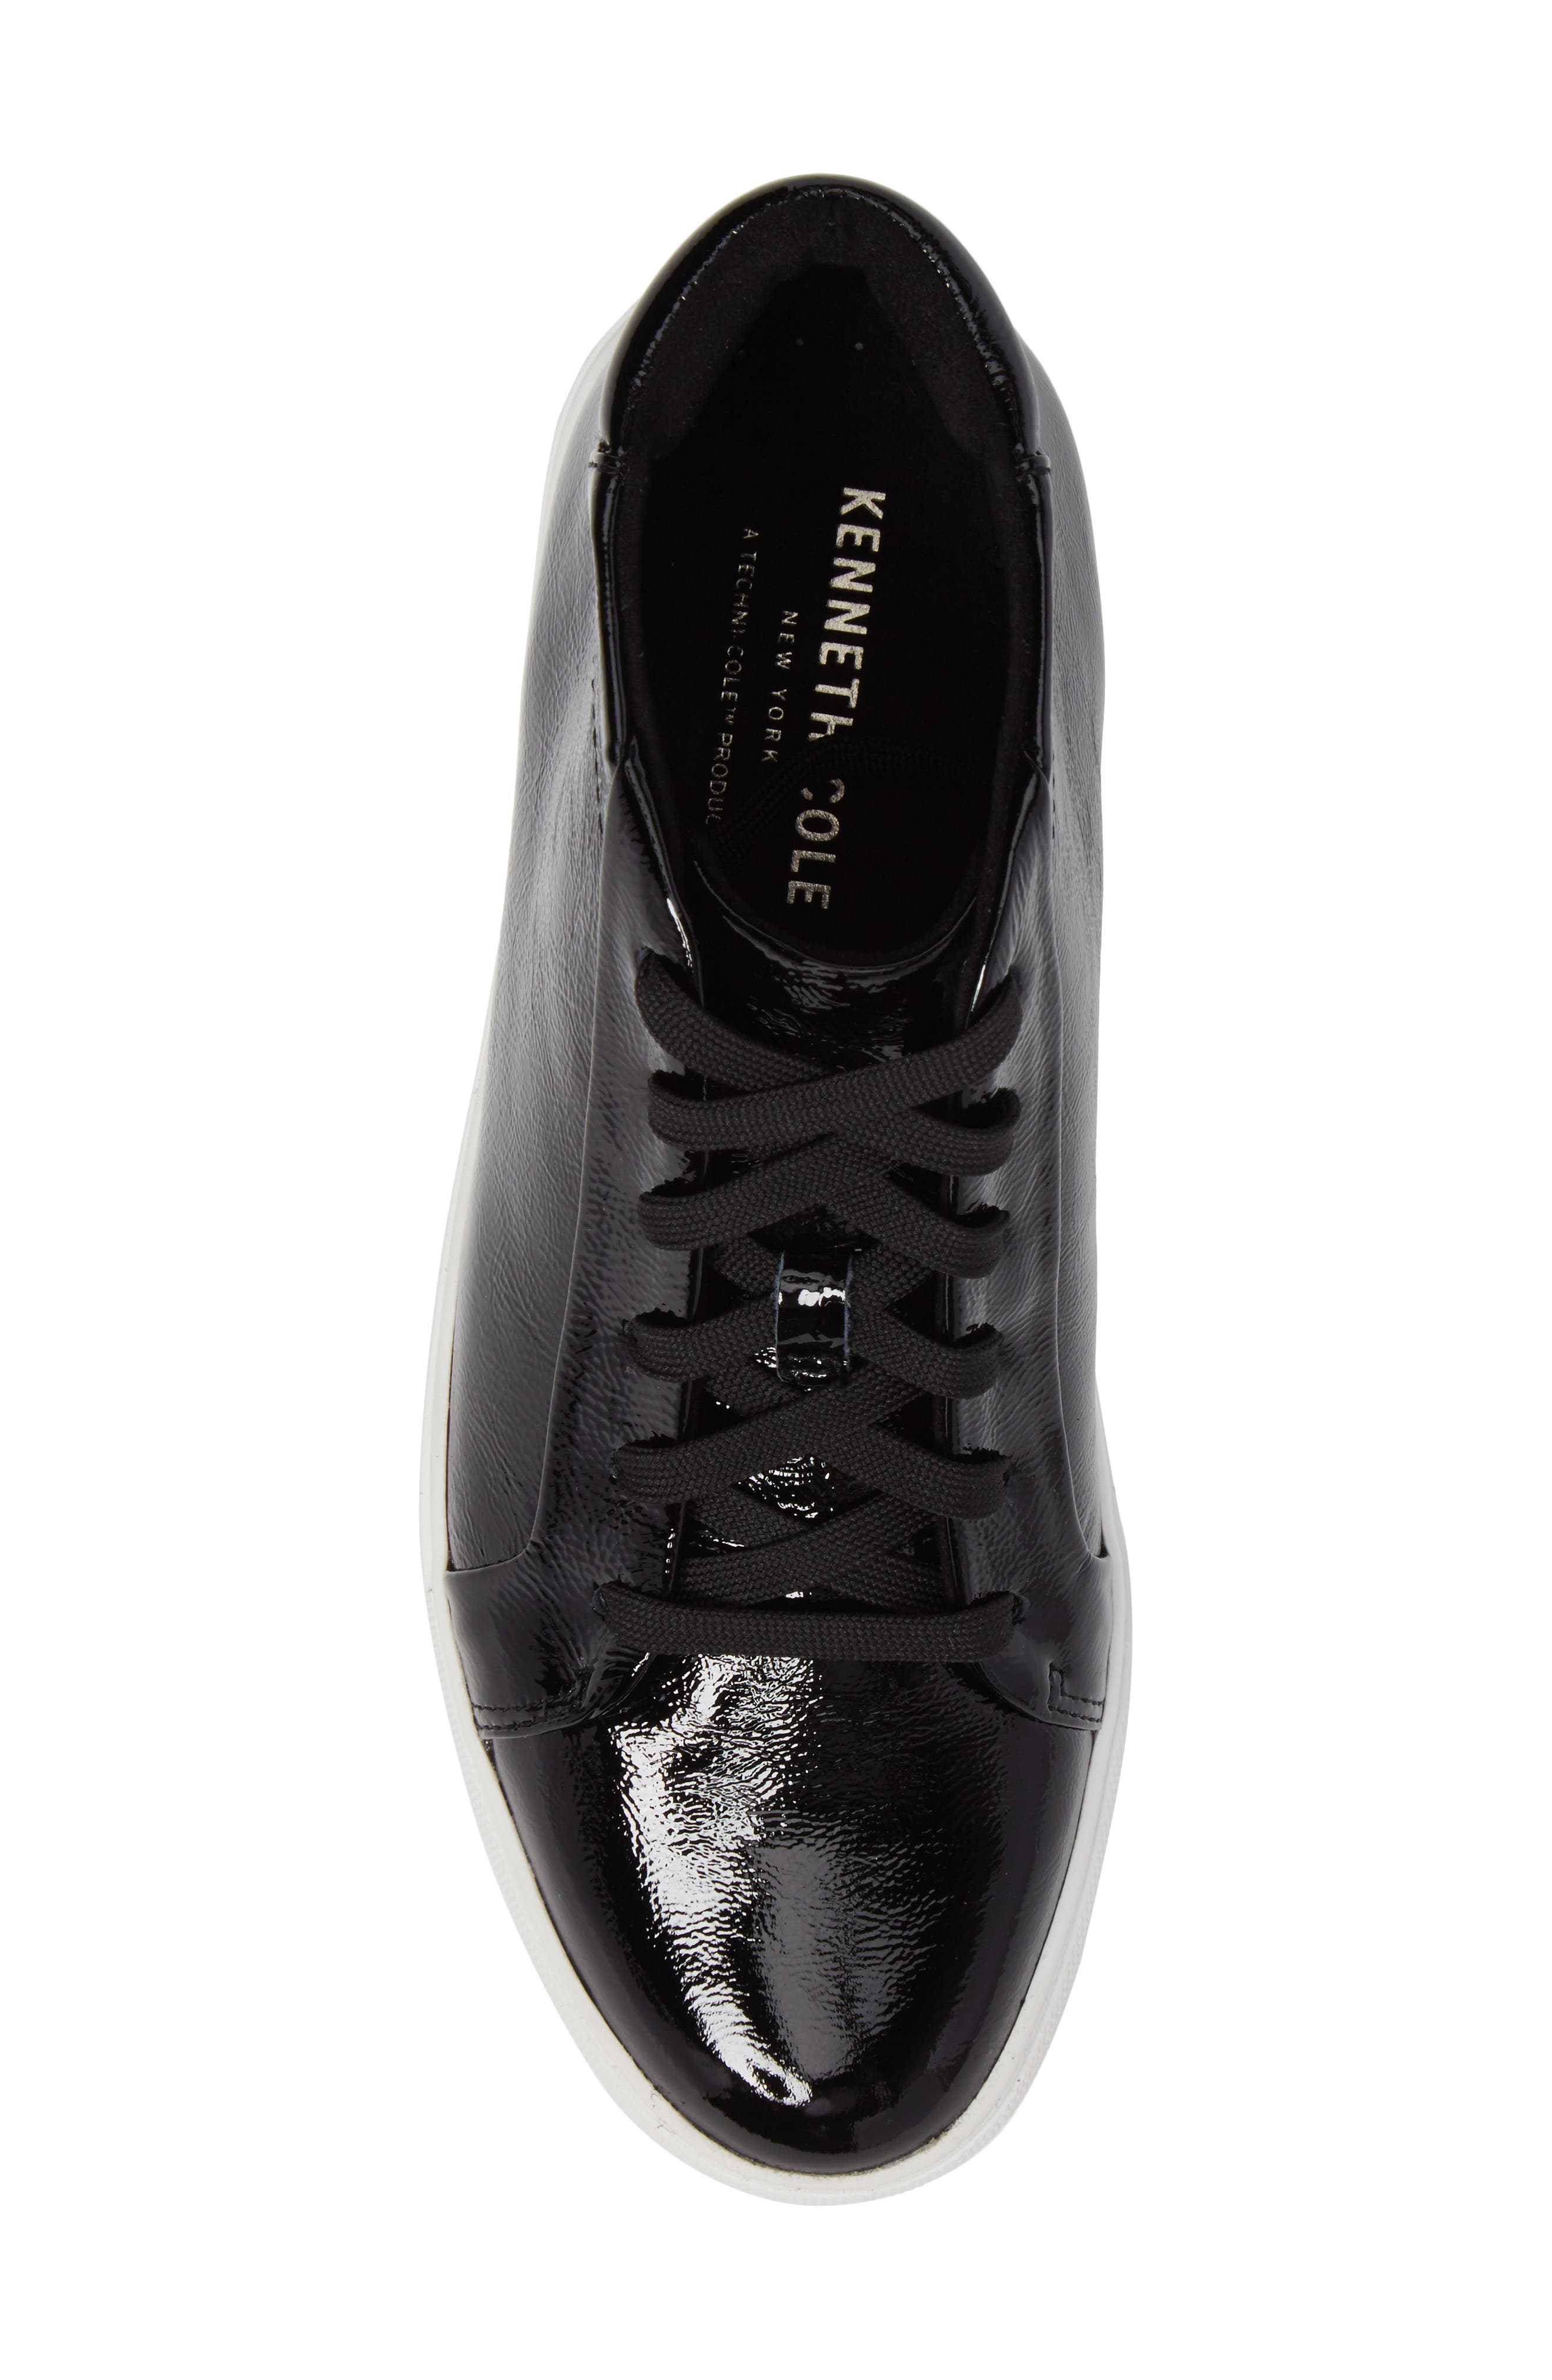 Janette High Top Platform Sneaker,                             Alternate thumbnail 5, color,                             Black Patent Leather